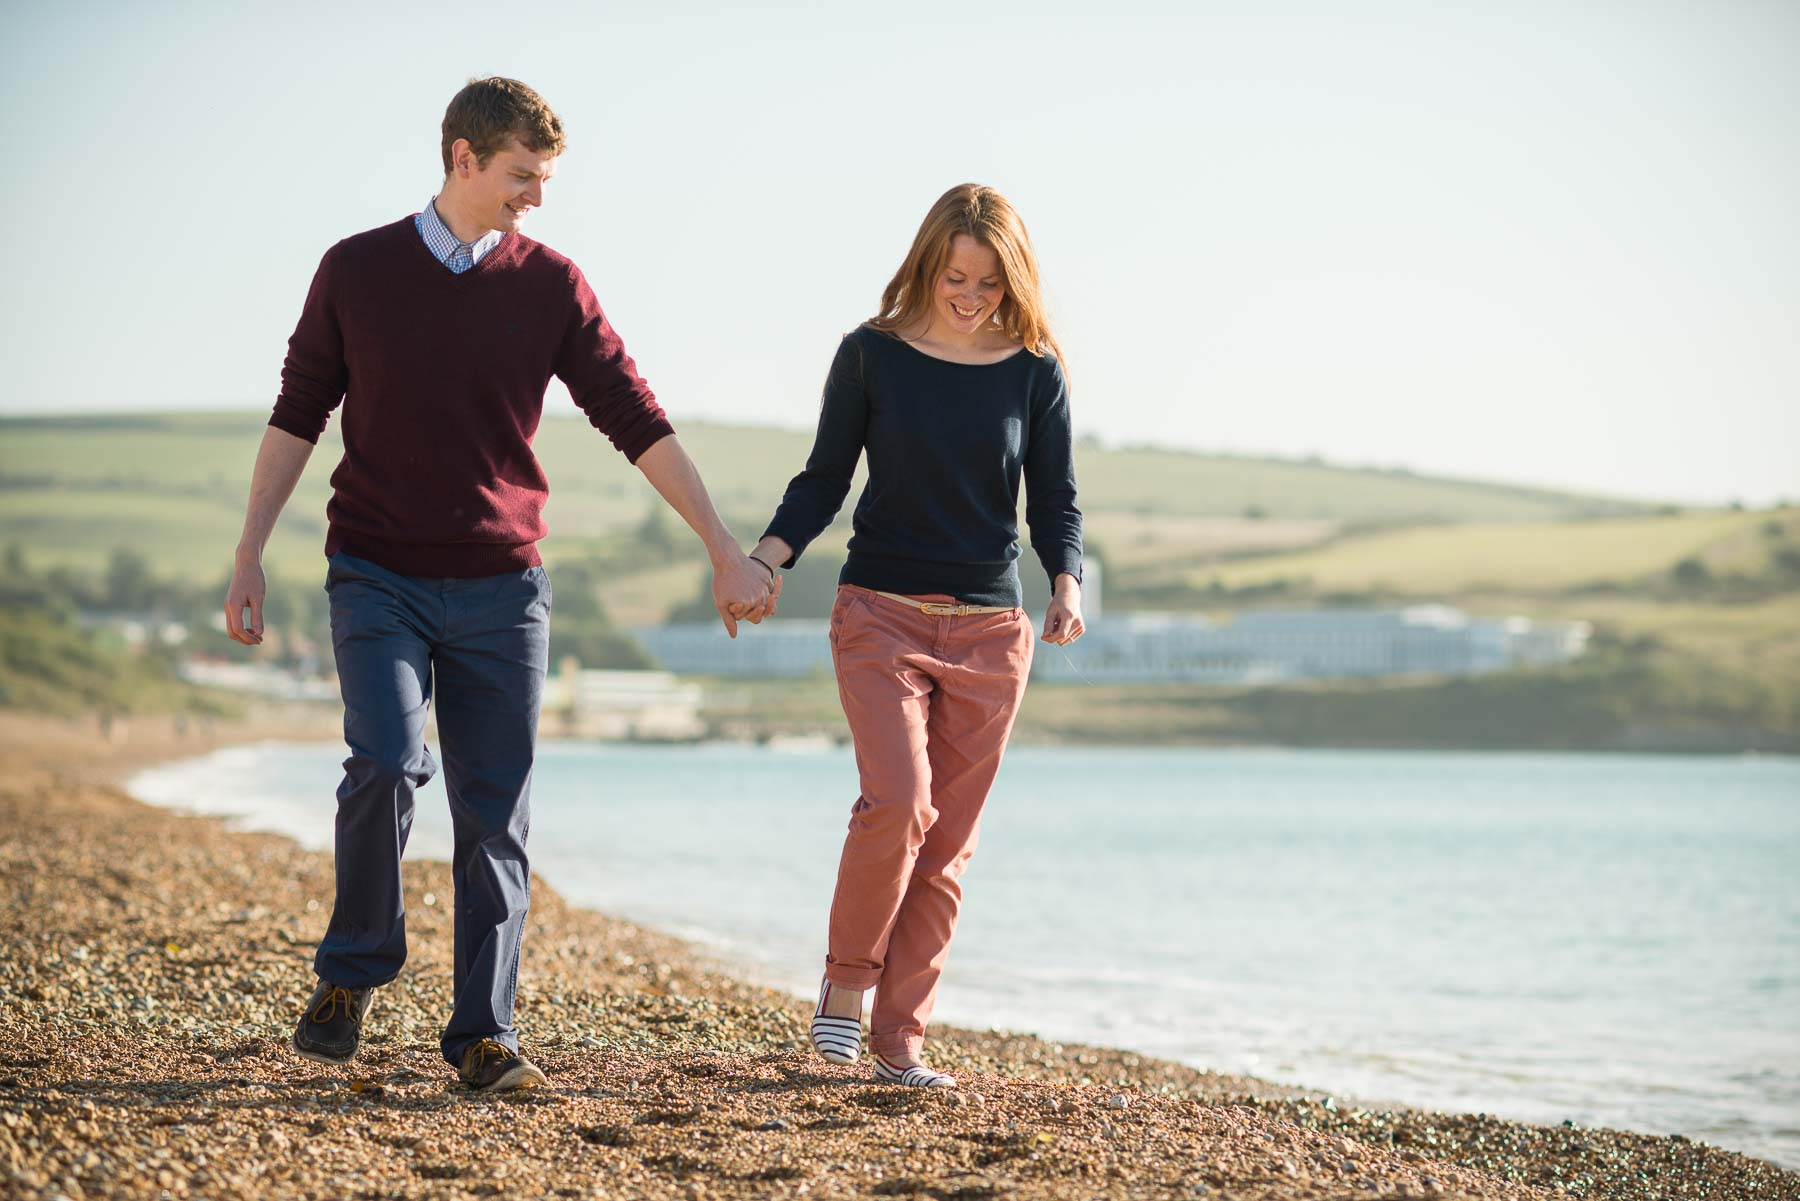 weymouth-beach-zoe-engagement-shoot-happy-couple-walking-10